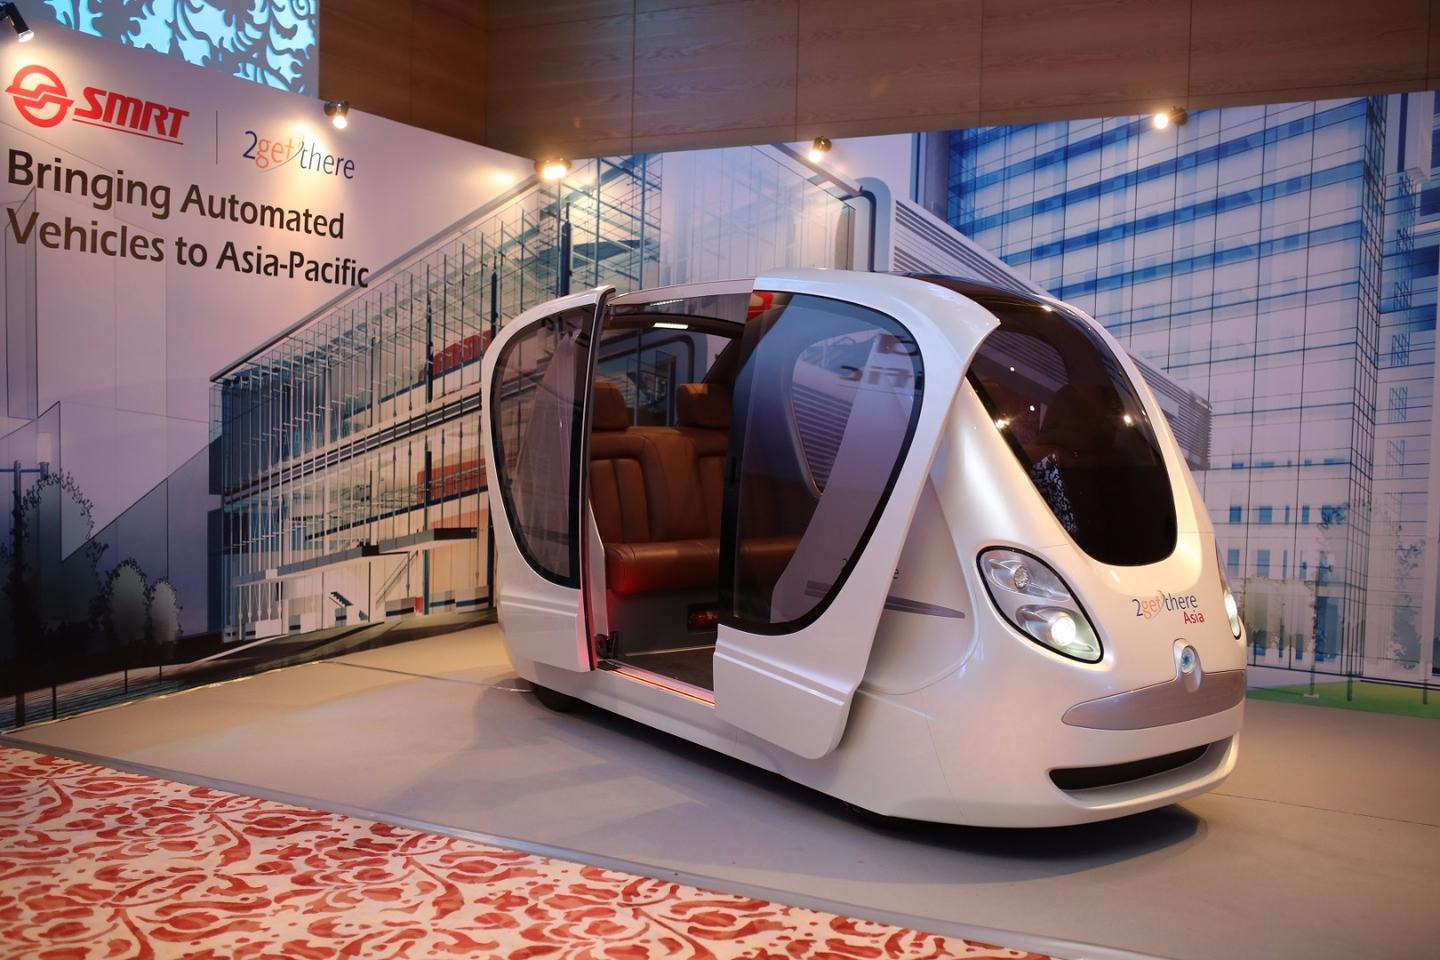 The third generation GRT electric pods can seat eight or twelve people and will be used to service first and last-mile mobility needs in Singapore